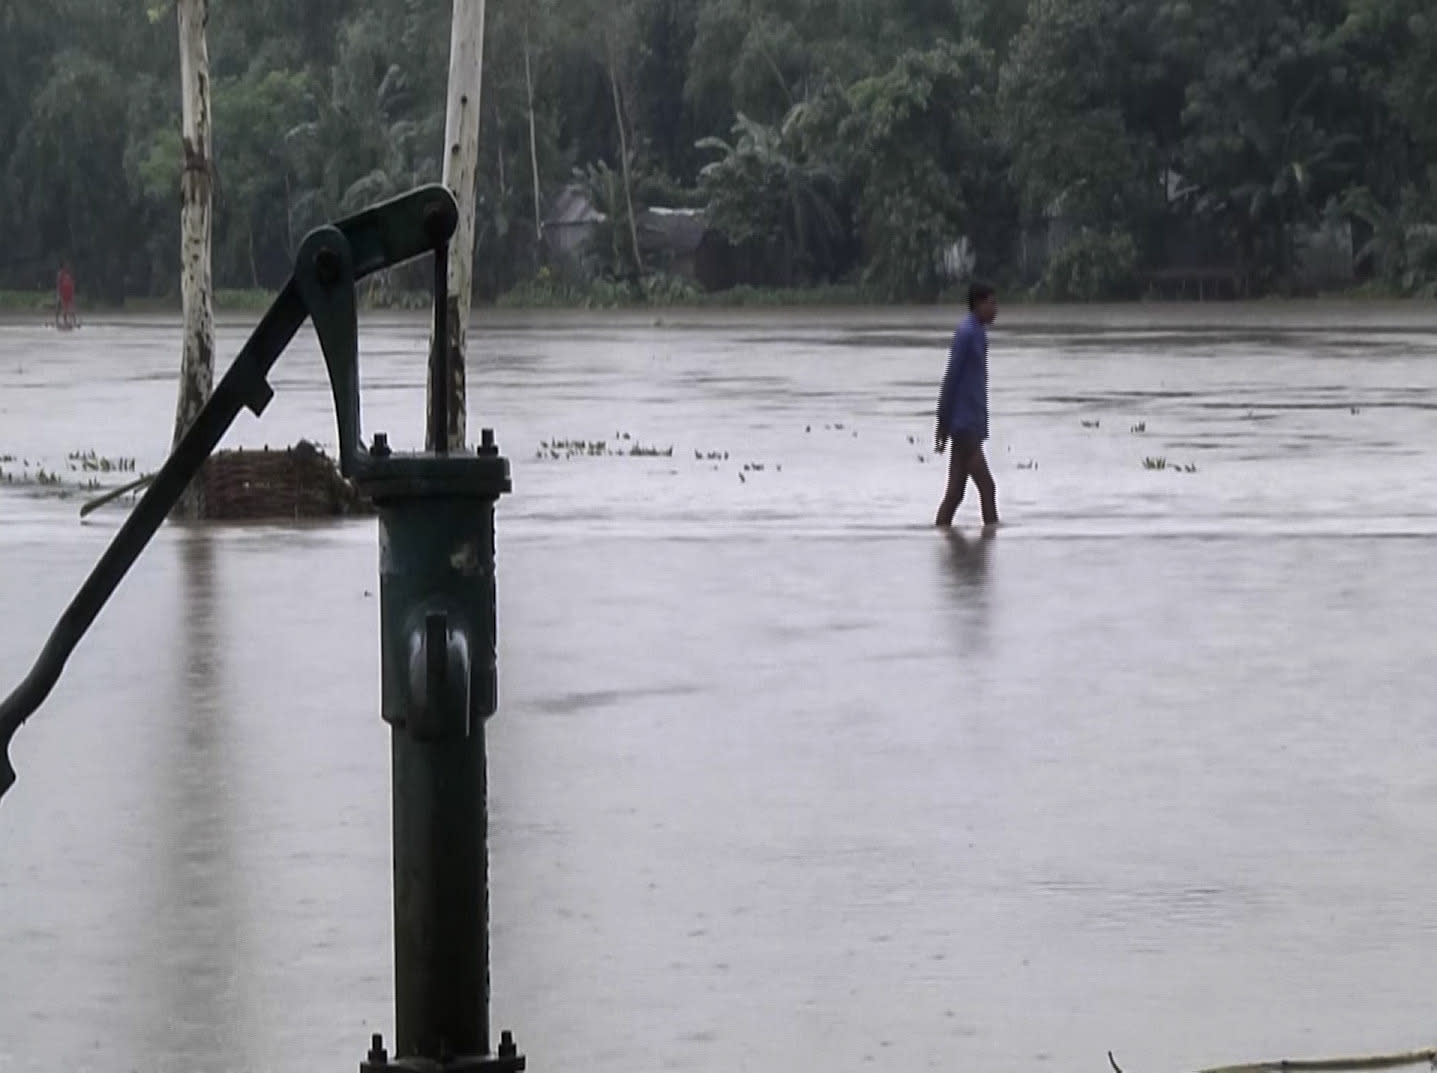 In this video grab taken from the Associated Press Television footage a Bangladeshi man walks through flood waters in Lalmonirhat, Bangladesh, Monday, July 13, 2020. Heavy flooding is worsening in parts of Bangladesh, with over 1 million villagers marooned or leaving their homes for higher ground along with their cattle and other belongings, officials and volunteers said Tuesday. (AP Photo/Bayezid Ahmed)